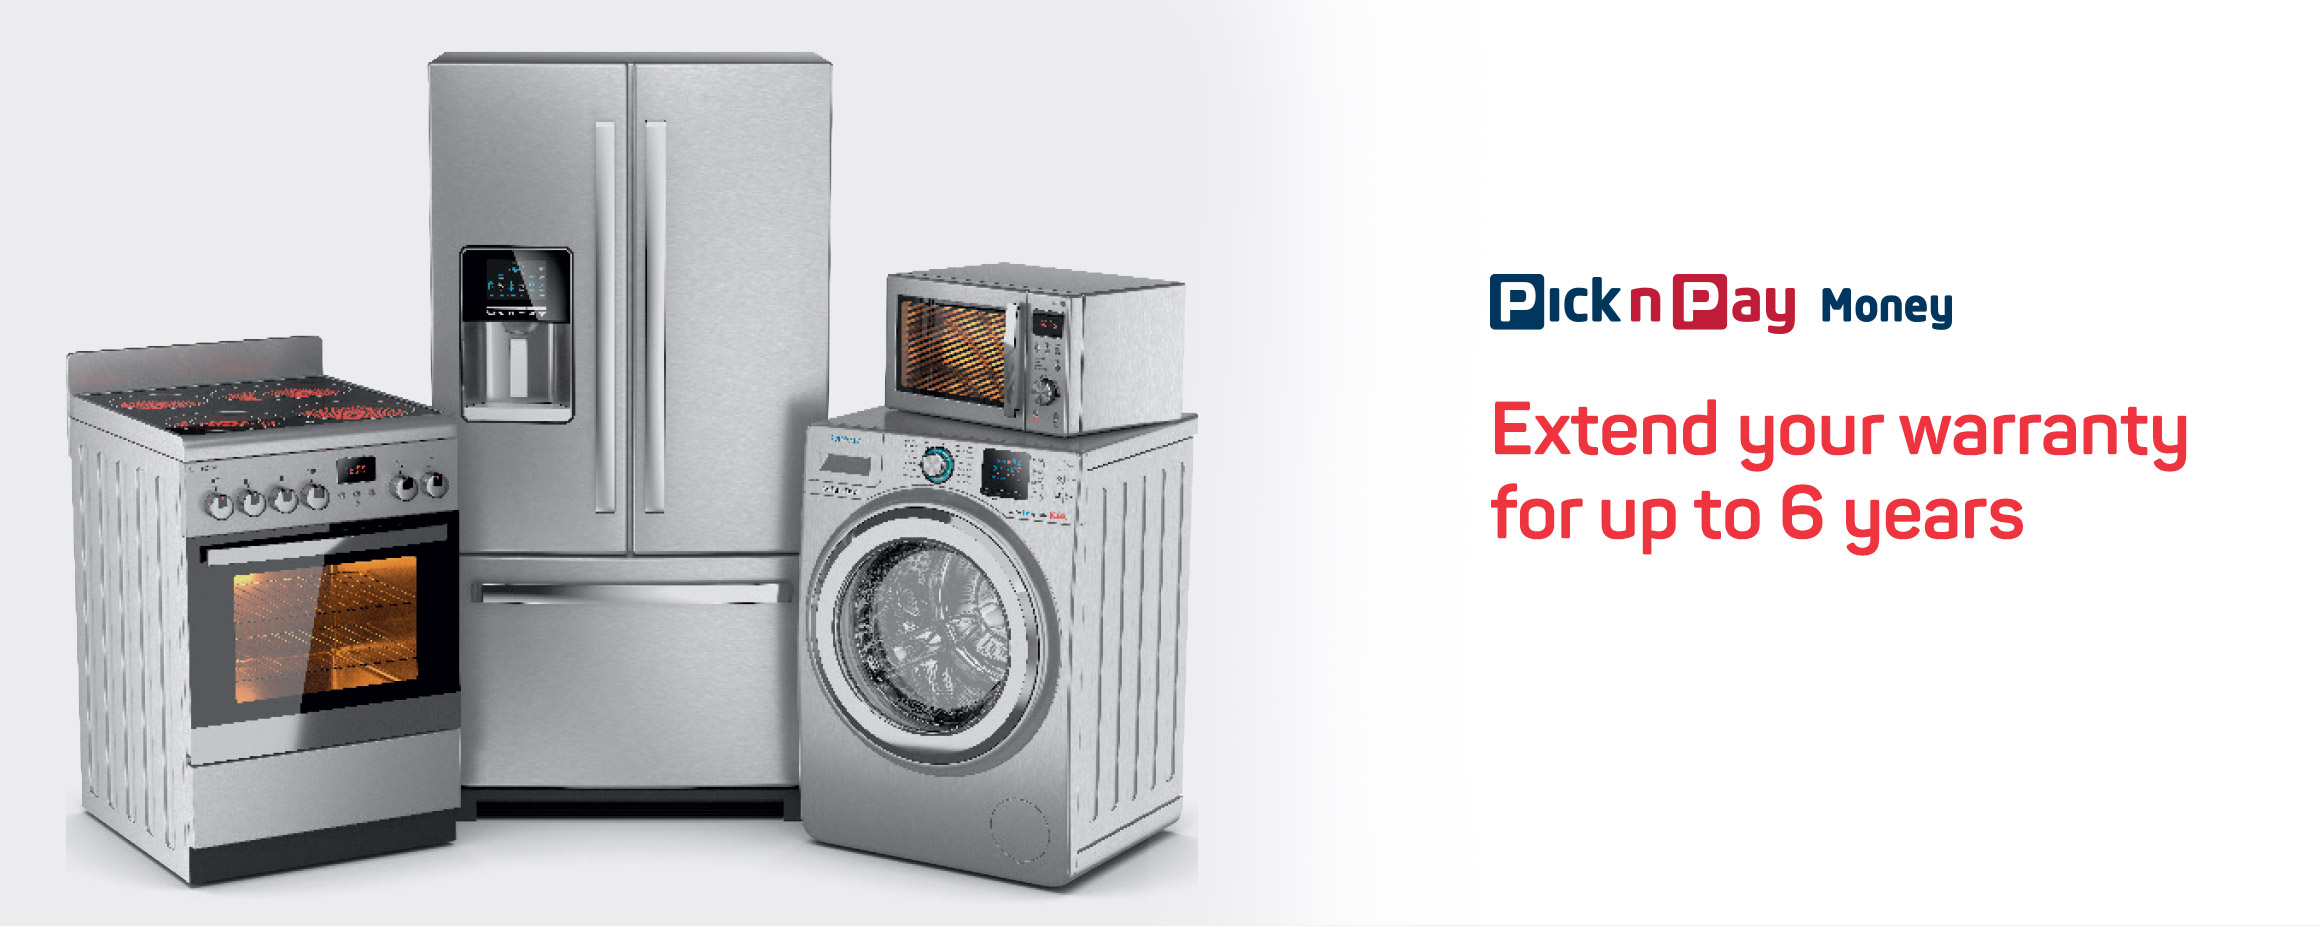 Extend your warranty for up to 6 years